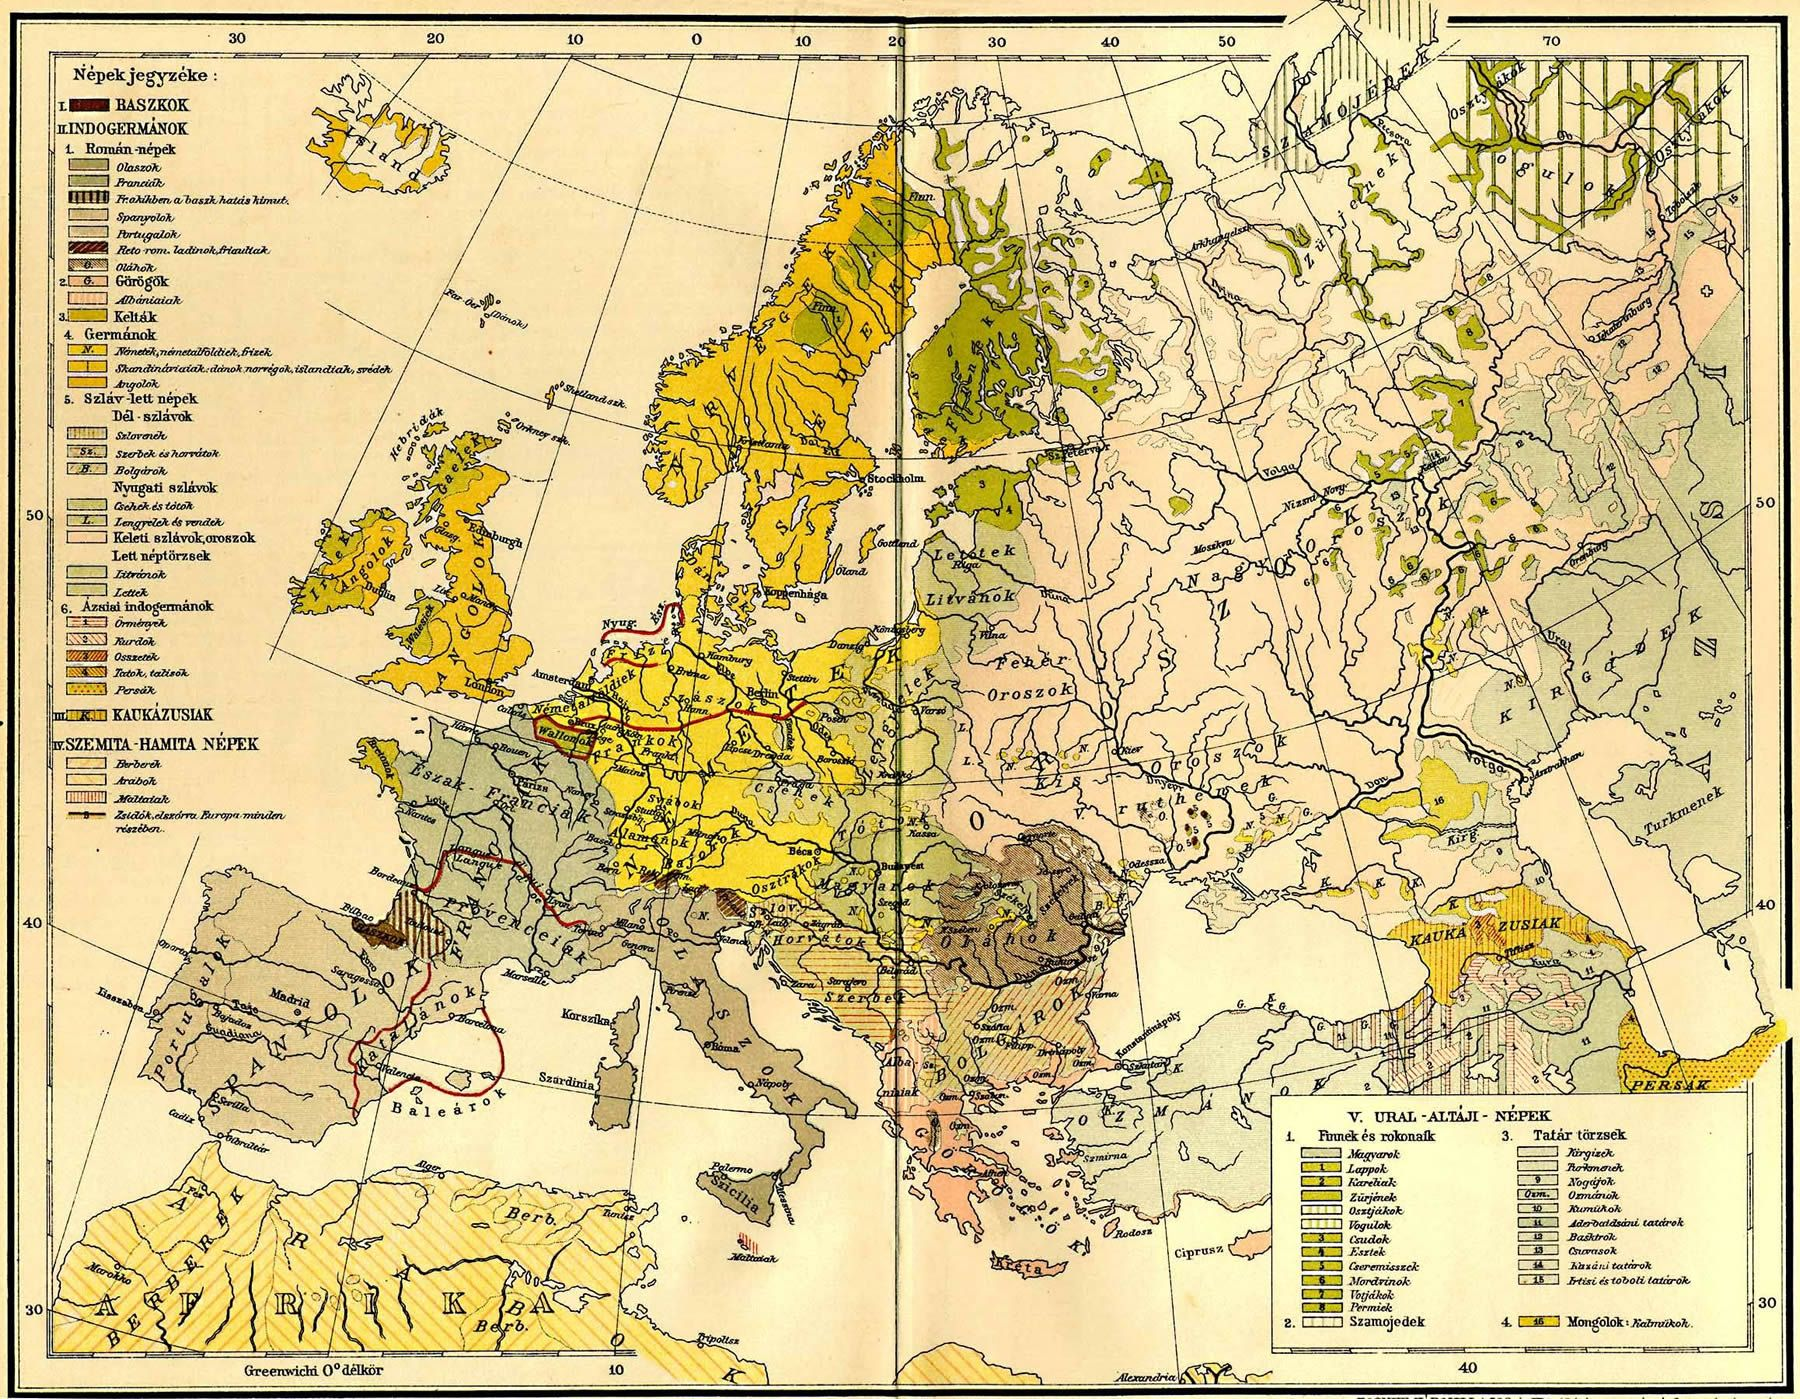 A hungarian ethnic map of Europe 1897 [1800x1399] | Human Geography ...